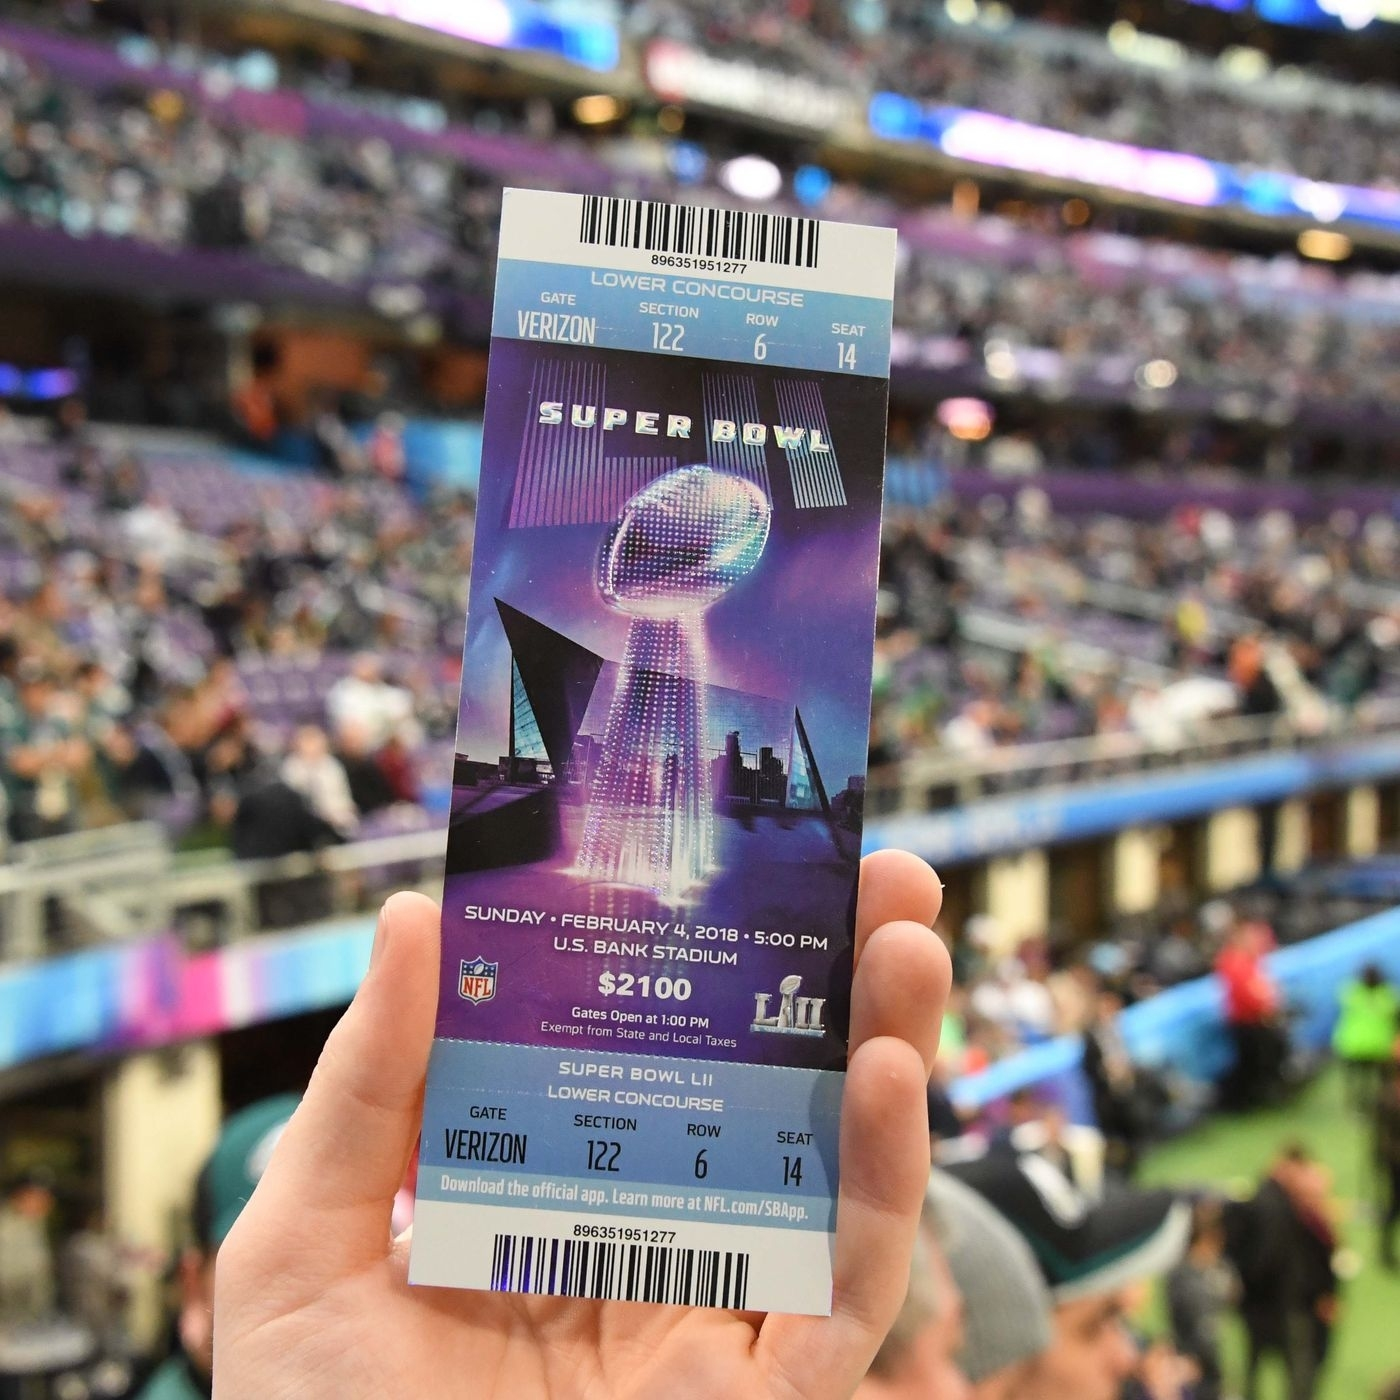 Super Bowl Tickets And Prices: How Do Fans Get See Patriots throughout Dallas Super Bowl Seating Problems